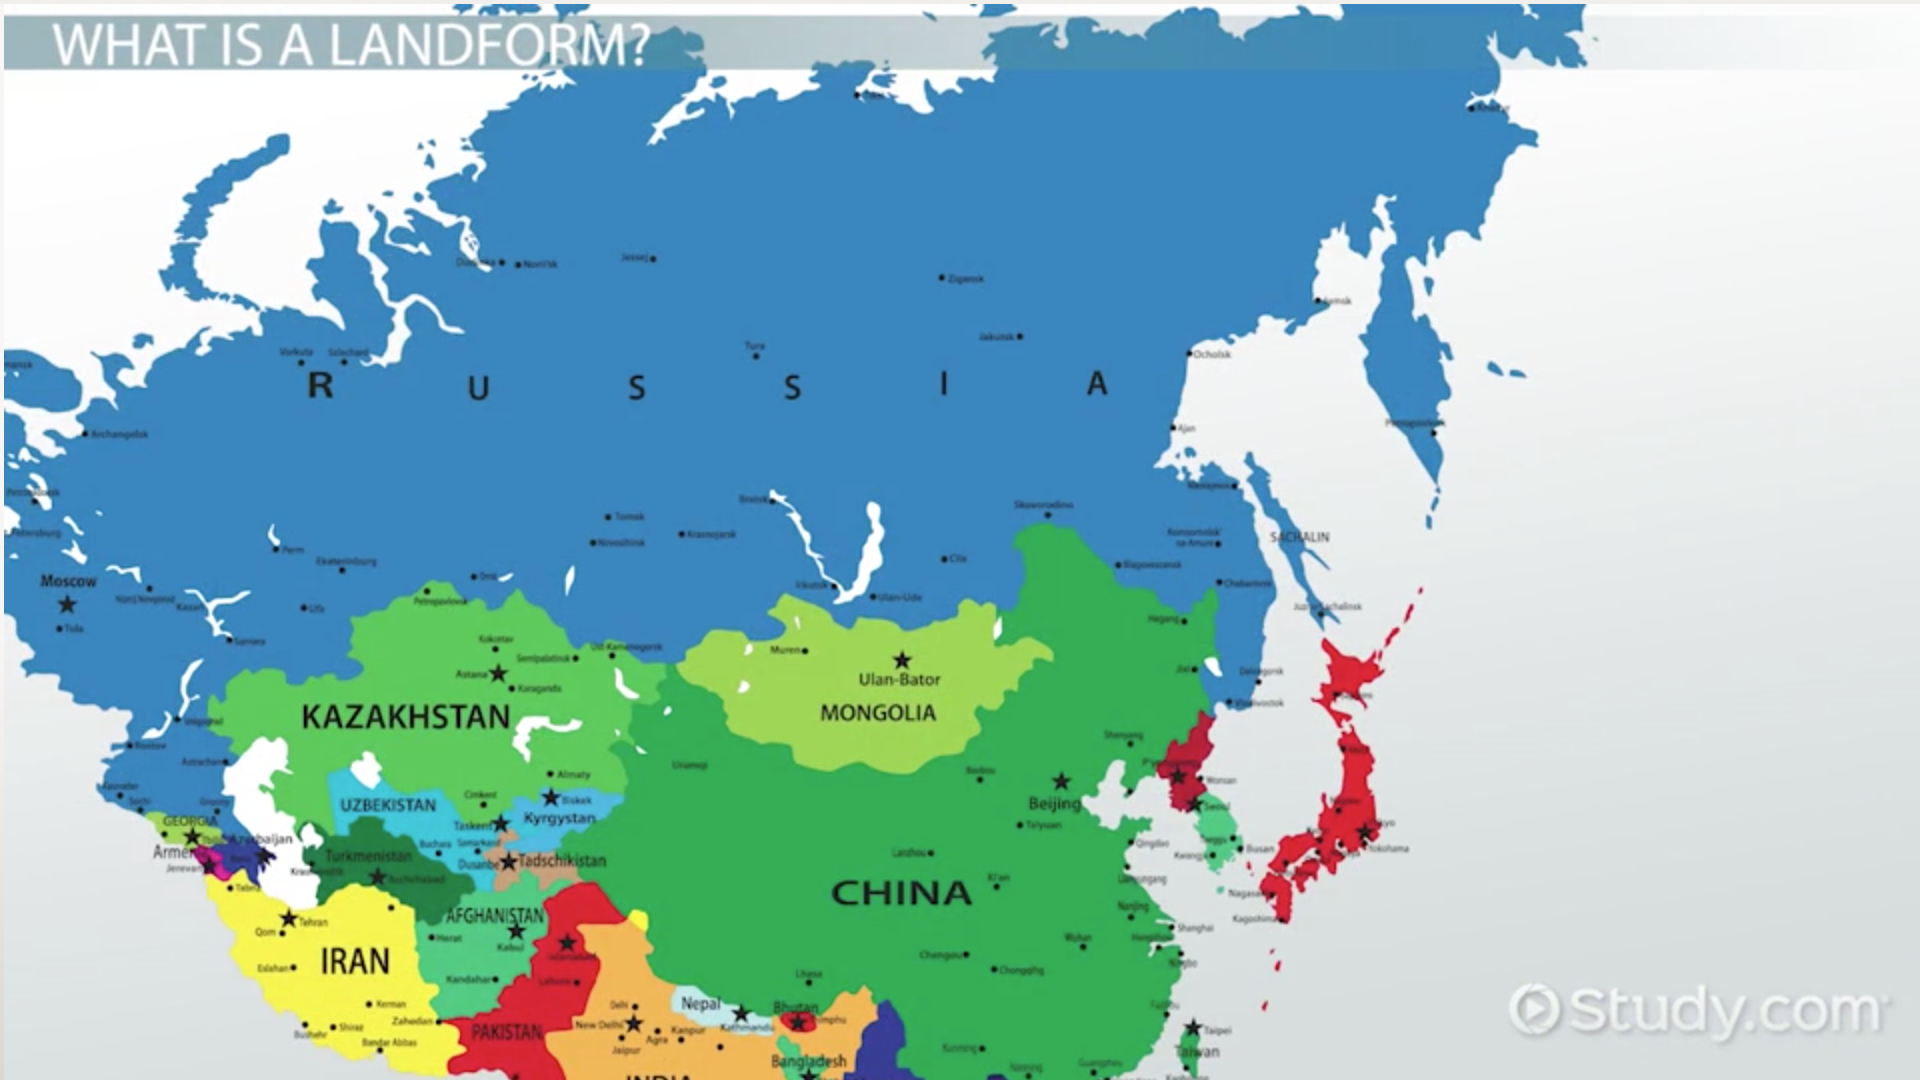 Major Landforms of Russia Central Asia Video Lesson